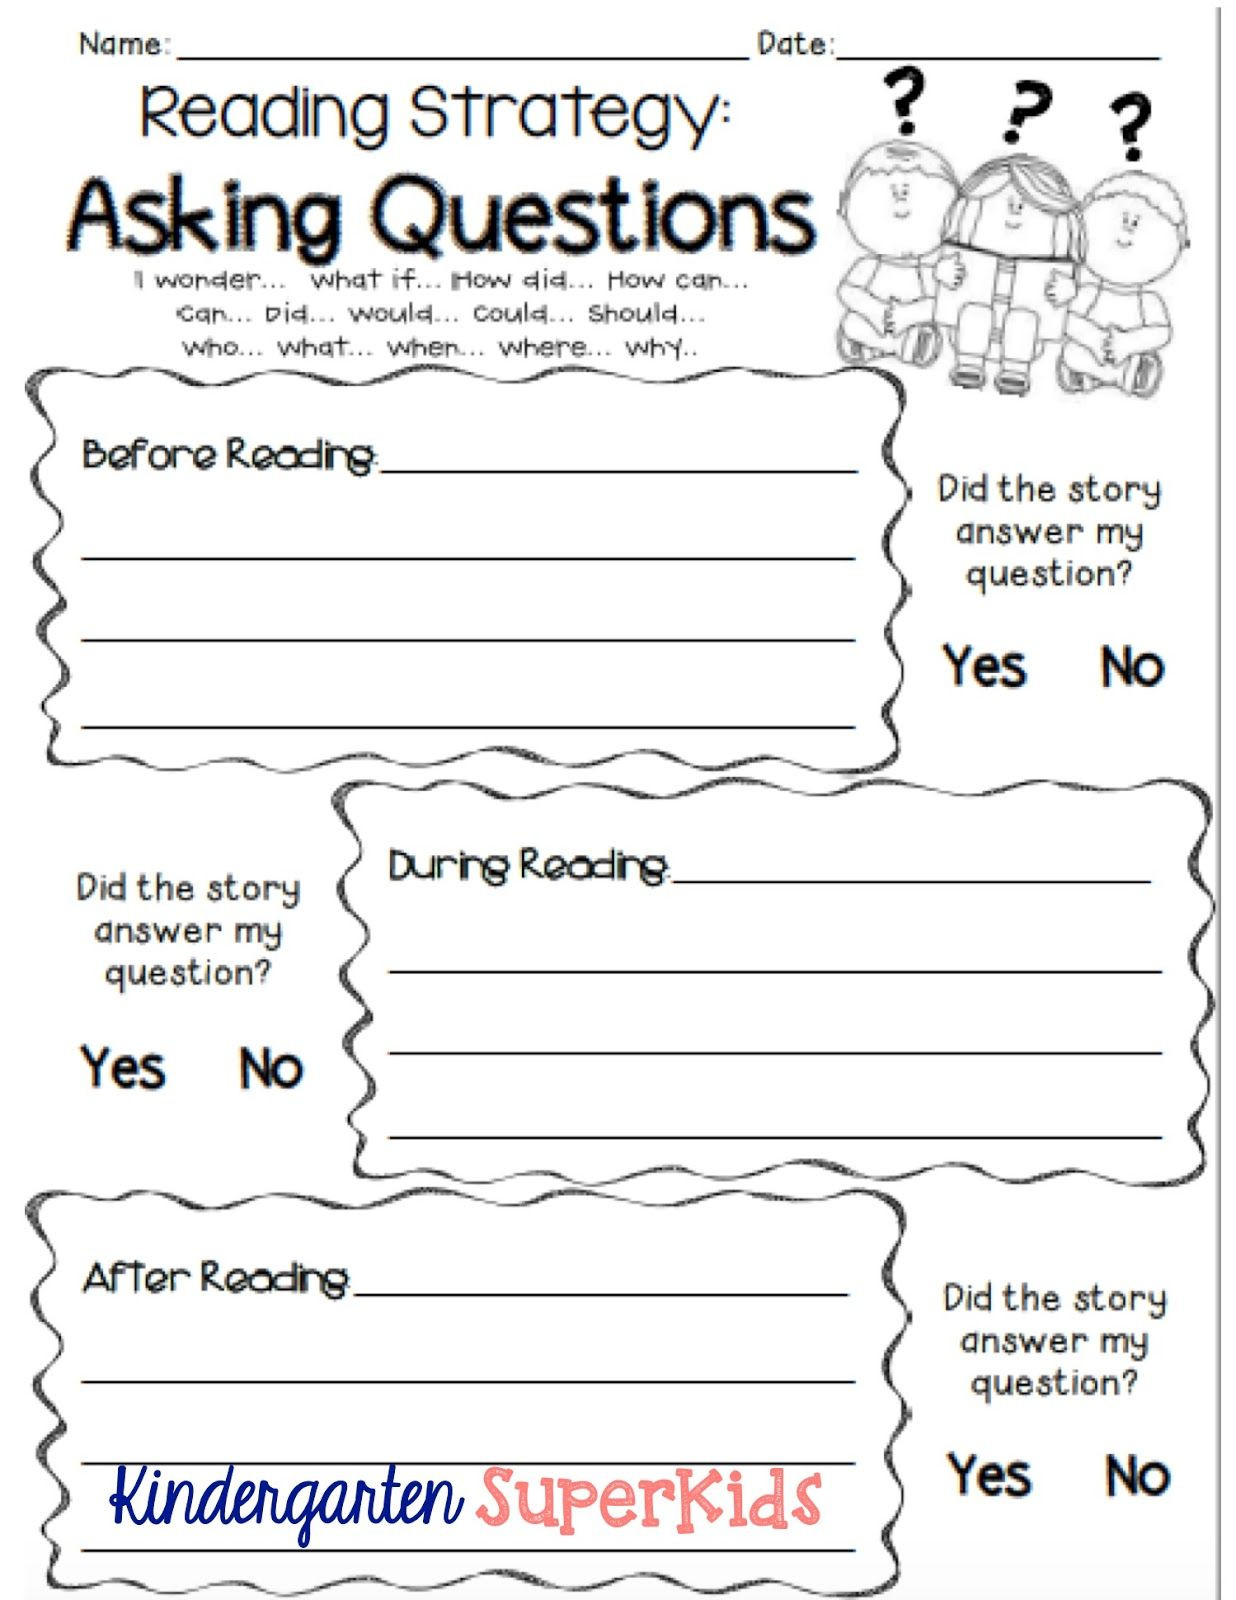 Reading A Timeline Worksheet asking Questions Reading Strategy Free Student Recording